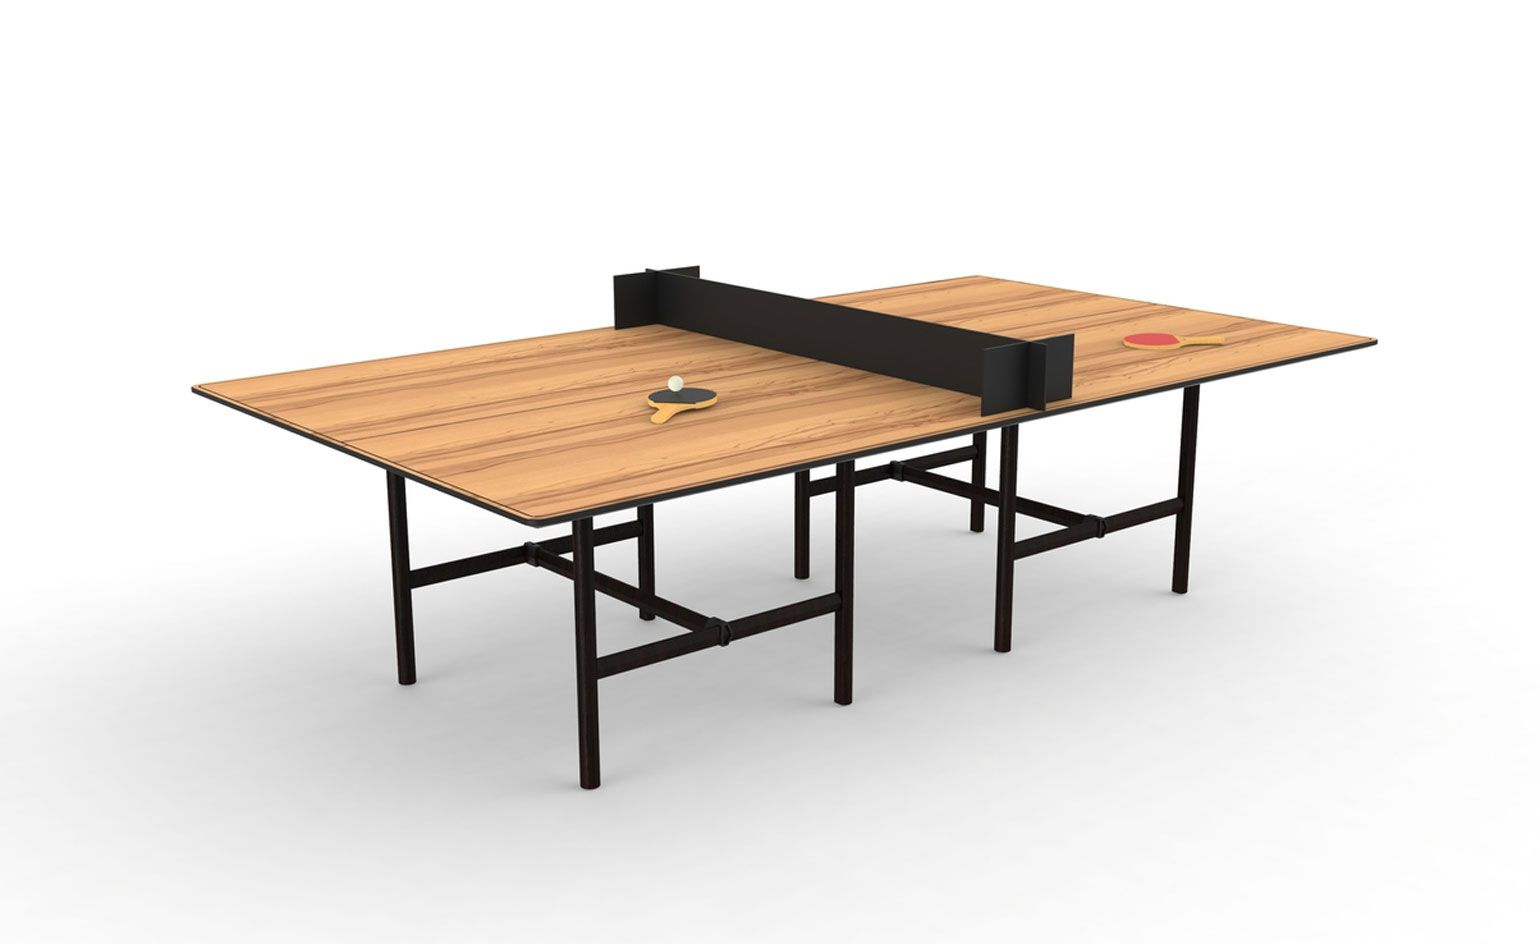 Marvelous Bouncing Around: Rounding Up The Most Innovative Ping Pong Table Designs |  Design | Wallpaper